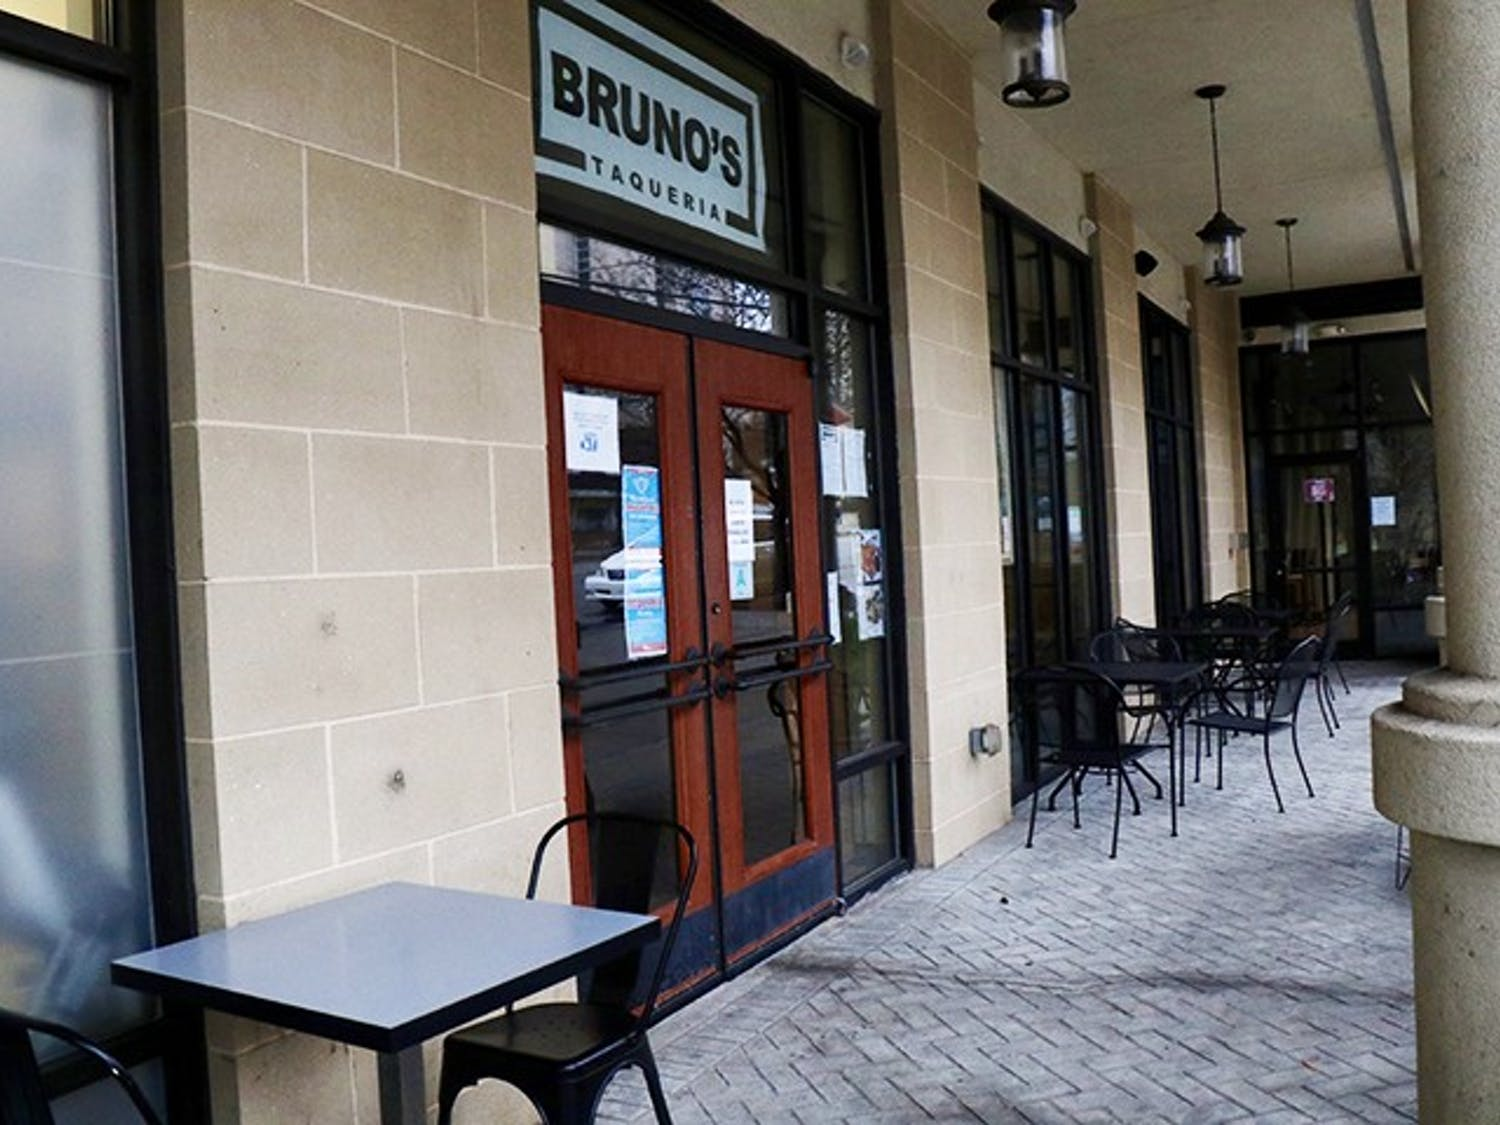 Tables and chairs are arranged in front of Bruno's Taqueria on Main Street, a new family-owned restaurant that specializes in tacos and other authentic Mexican classics.